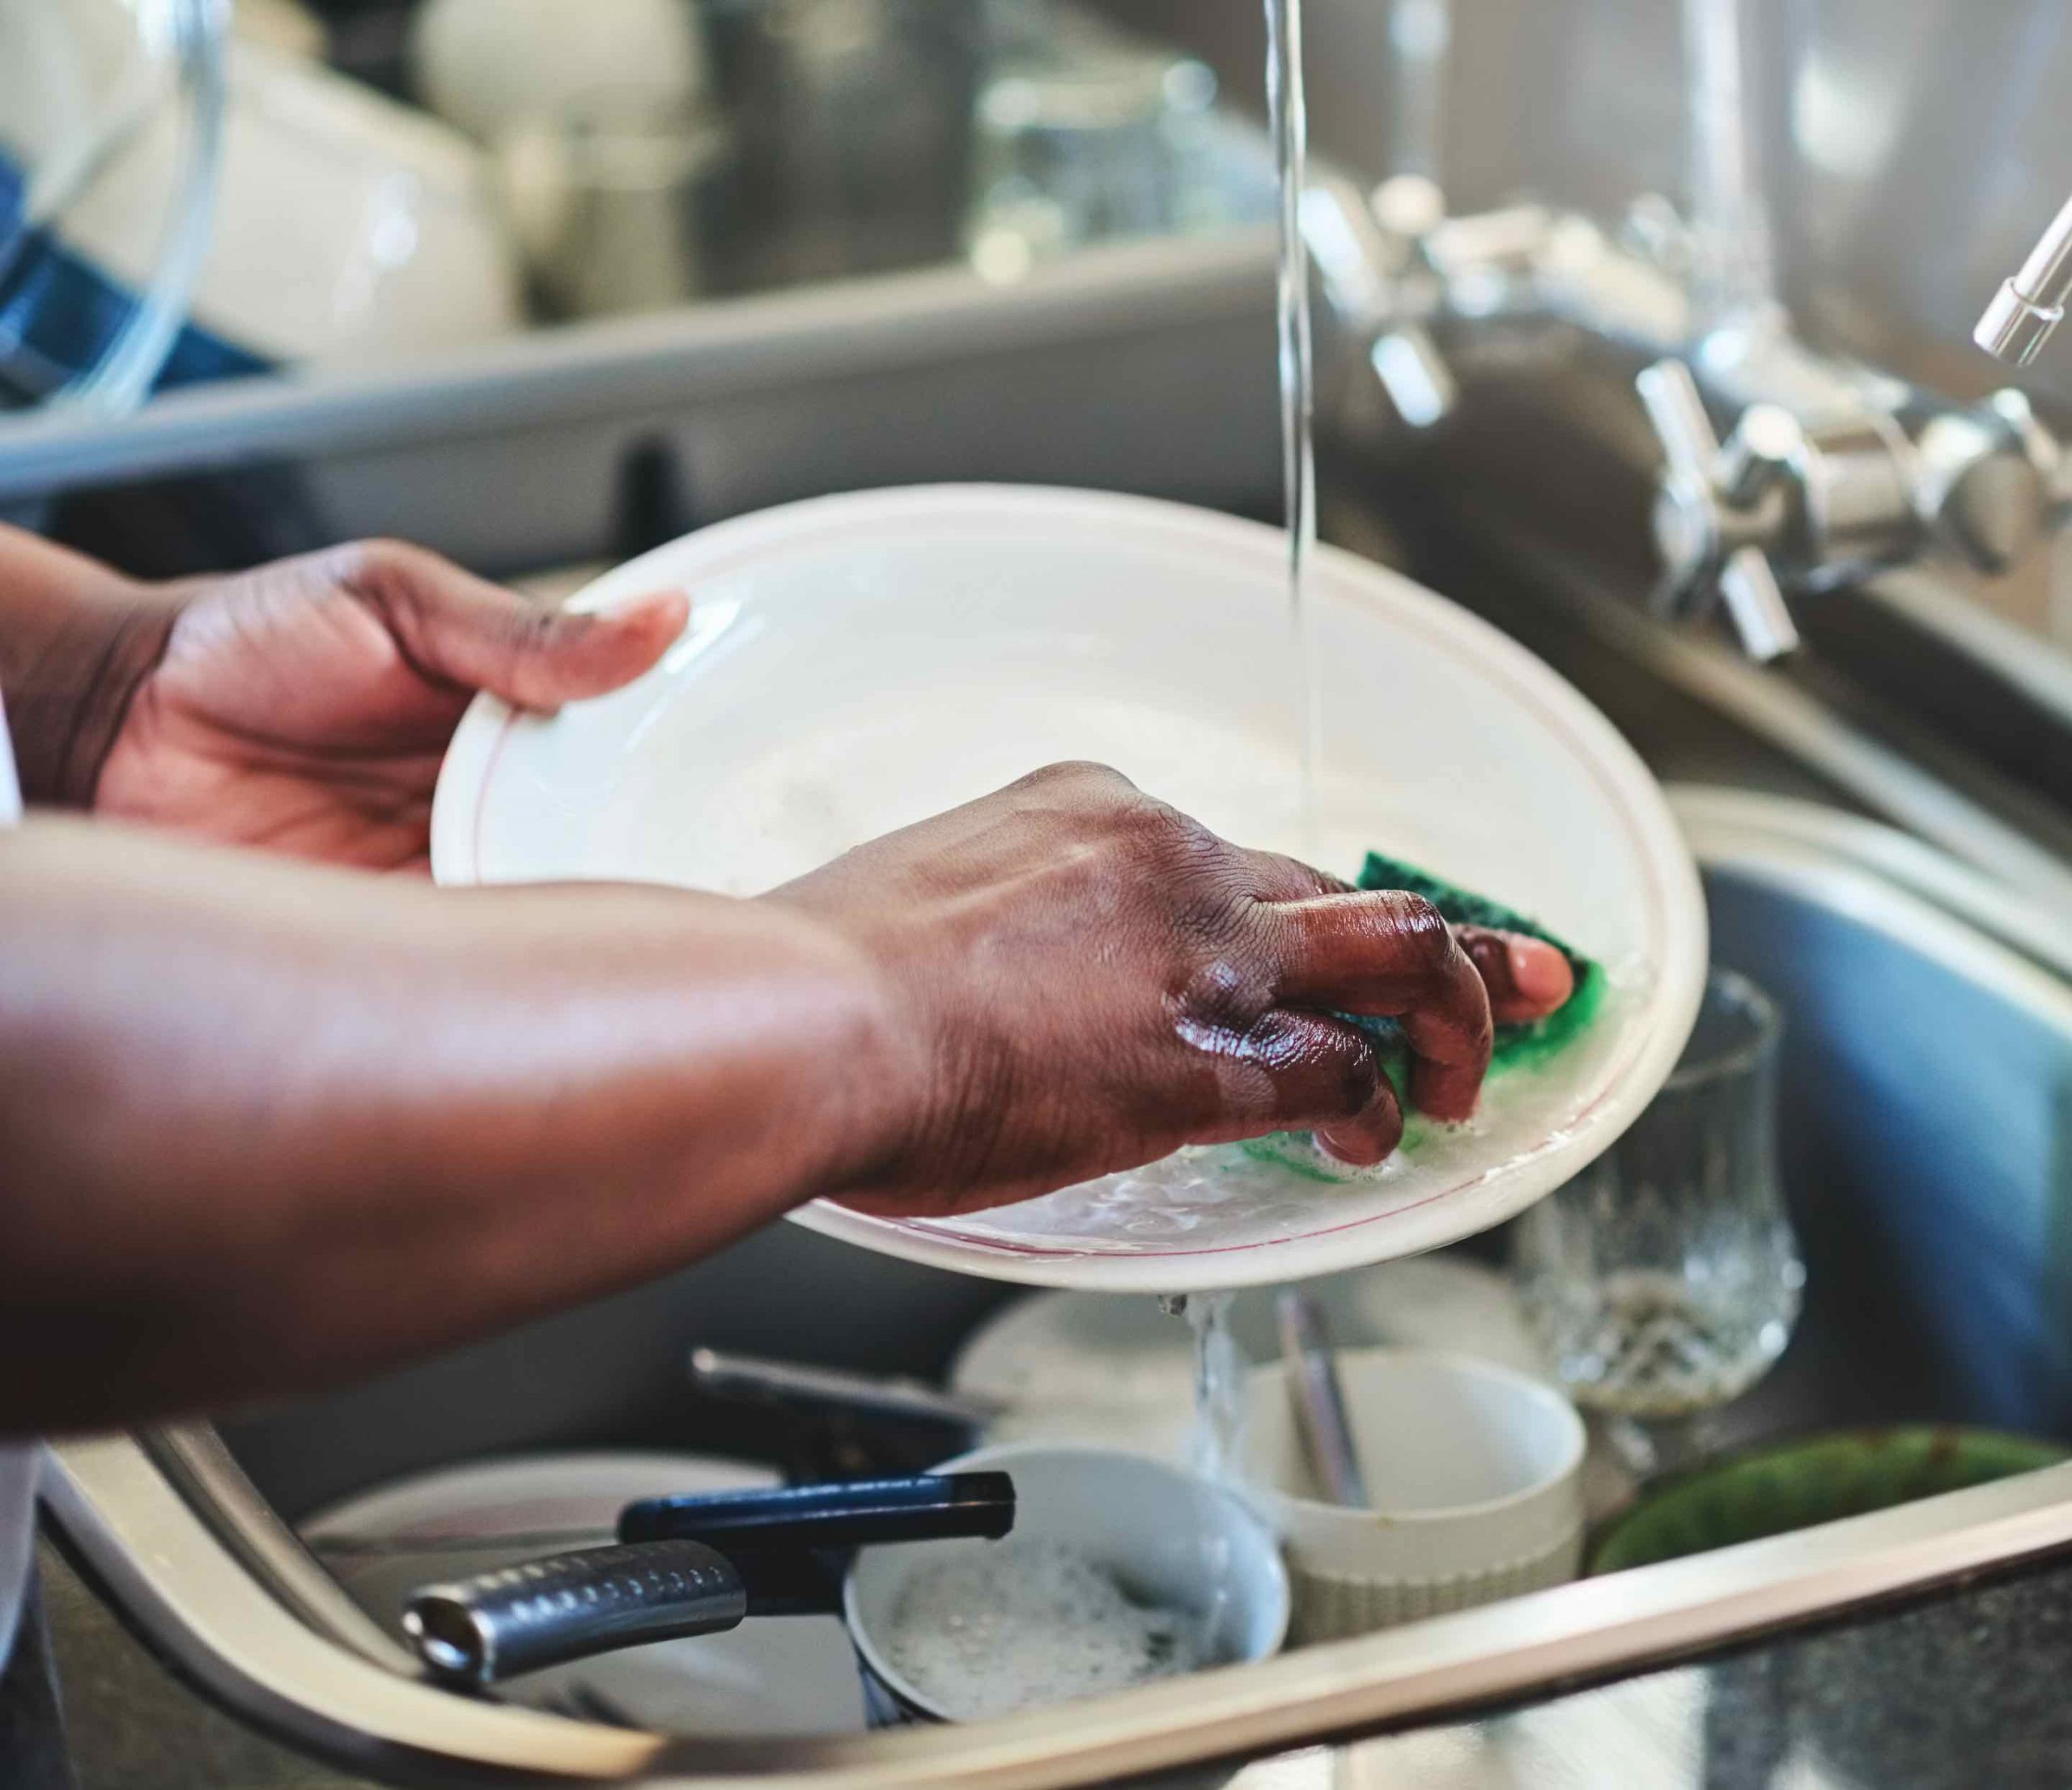 Woman scrubbing dishes overtop kitchen sink with Plant-Based Dish Soap